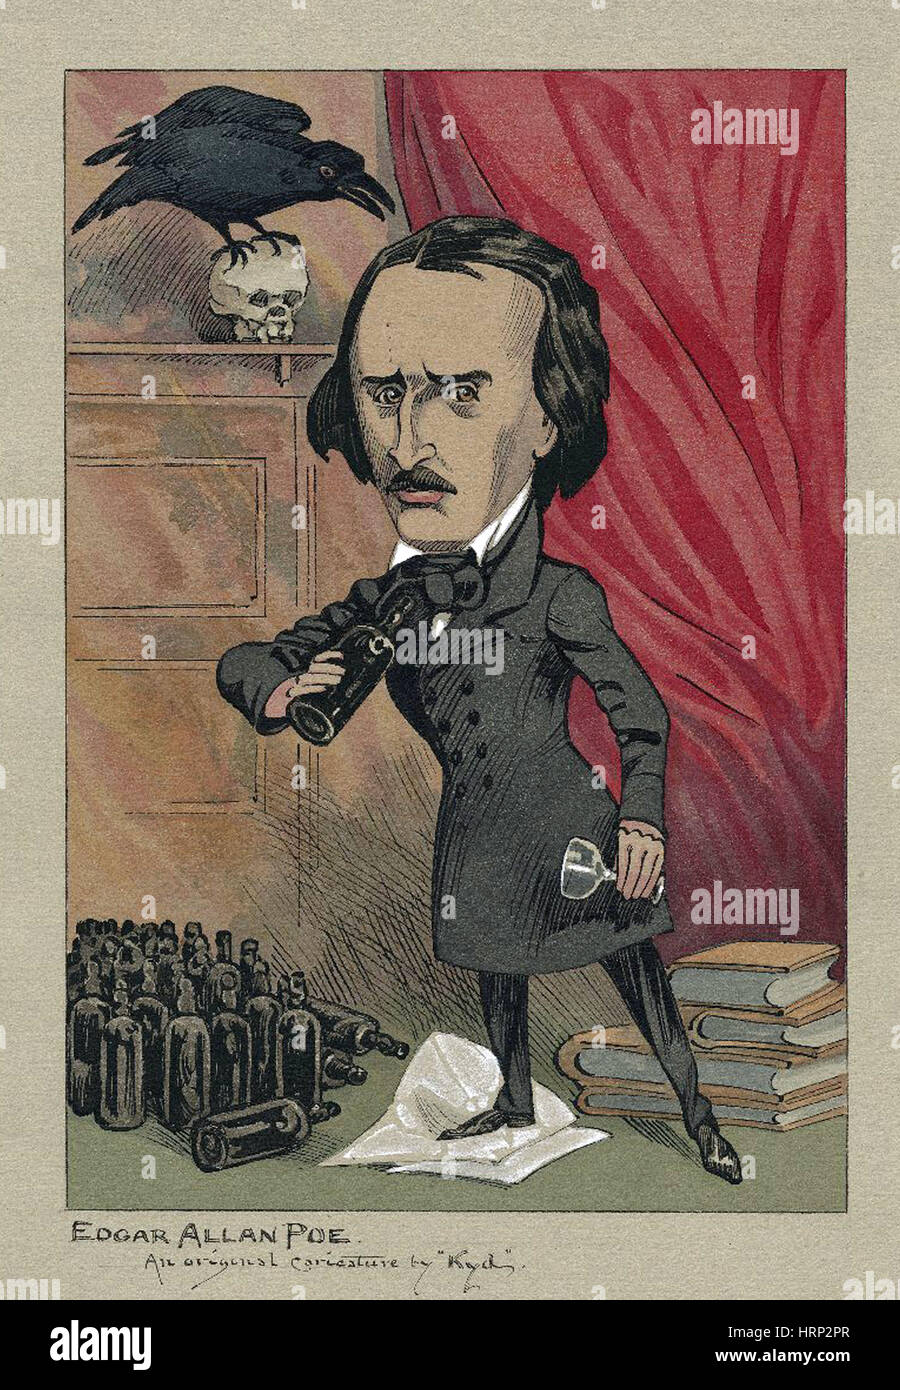 Edgar Allan Poe, American Author - Stock Image